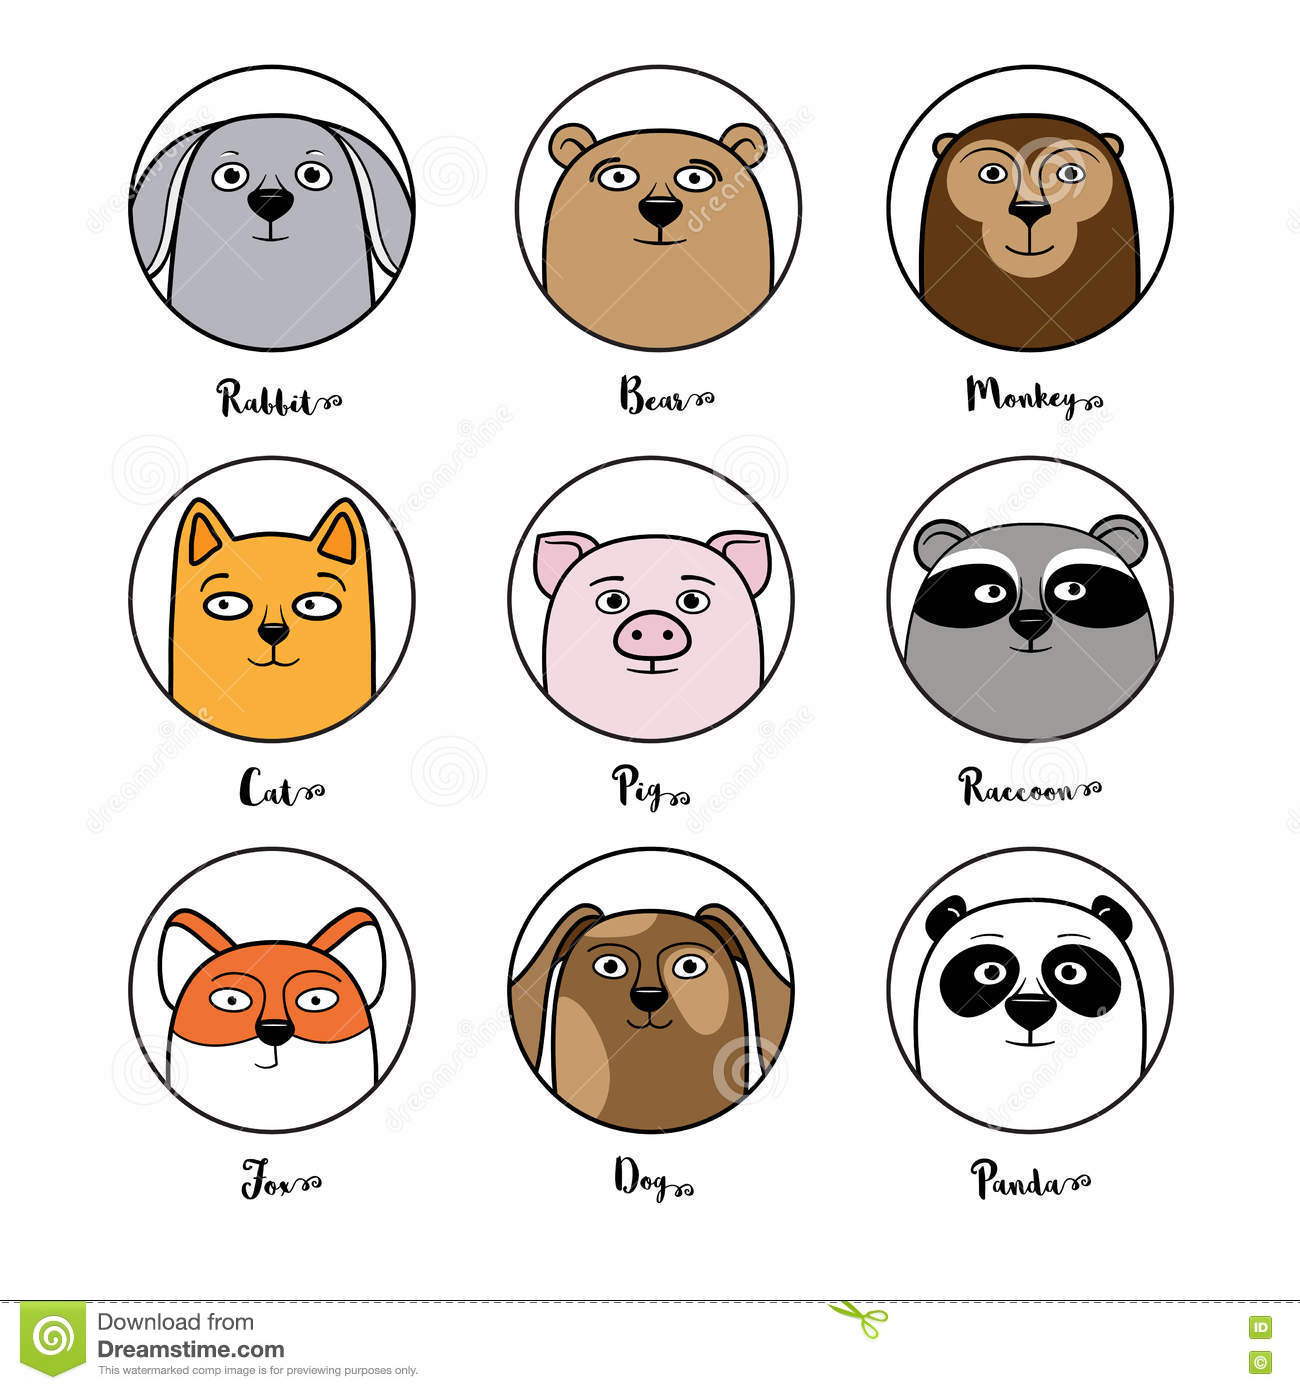 Avatar 2 Animals: Set Of Cute Animal Avatars In Circles Stock Vector